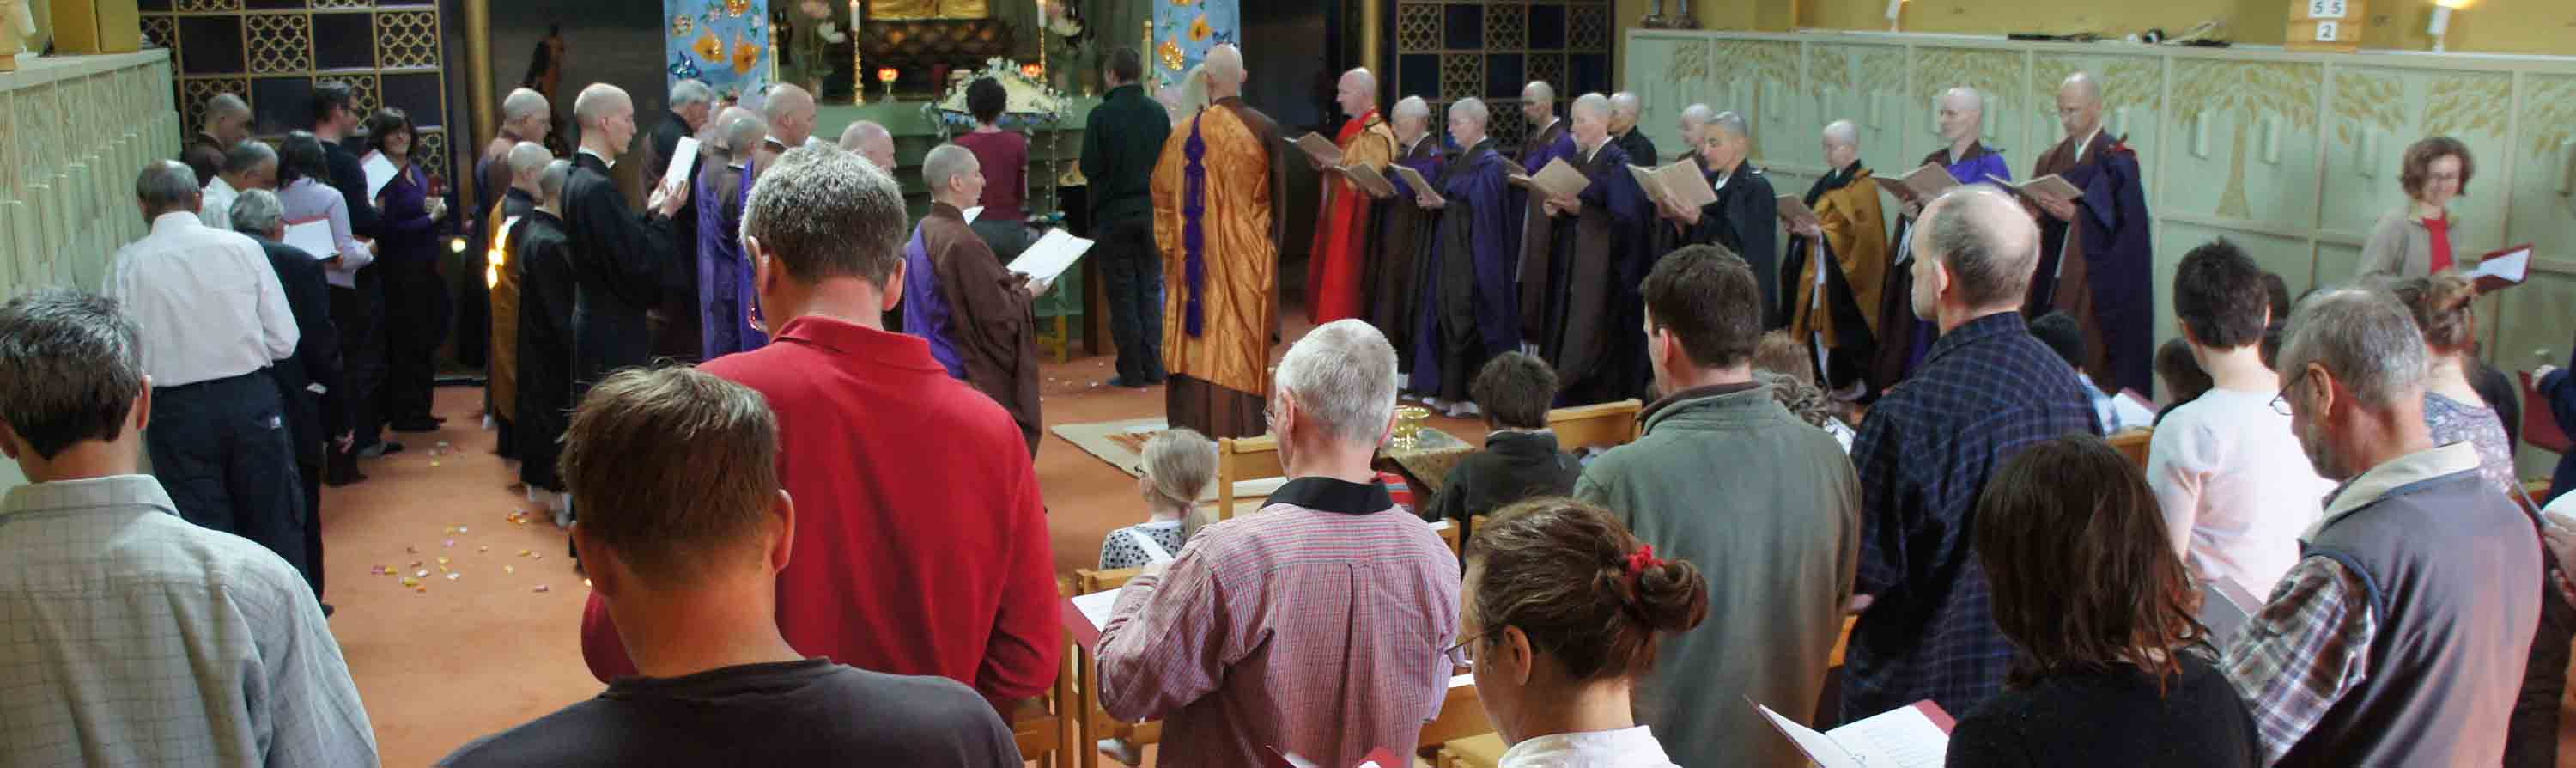 Order of Buddhist Contemplatives: Ceremony at Throssel Hole Buddhist Abbey